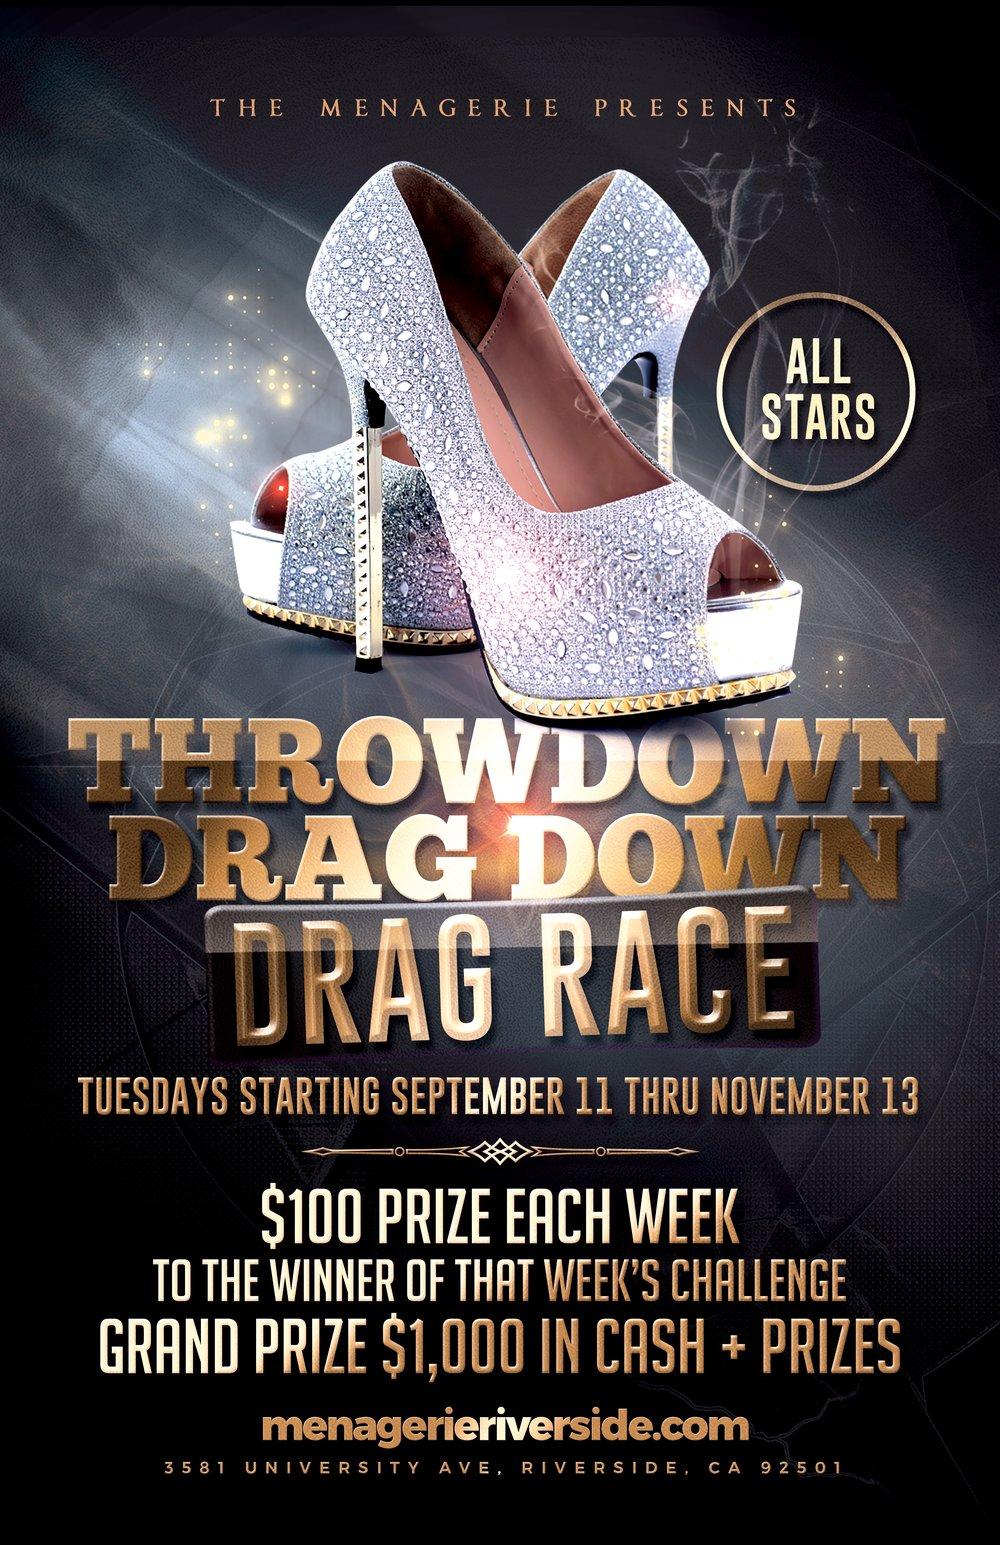 Throwdown Dragdown Drag Race-squashed.jpg